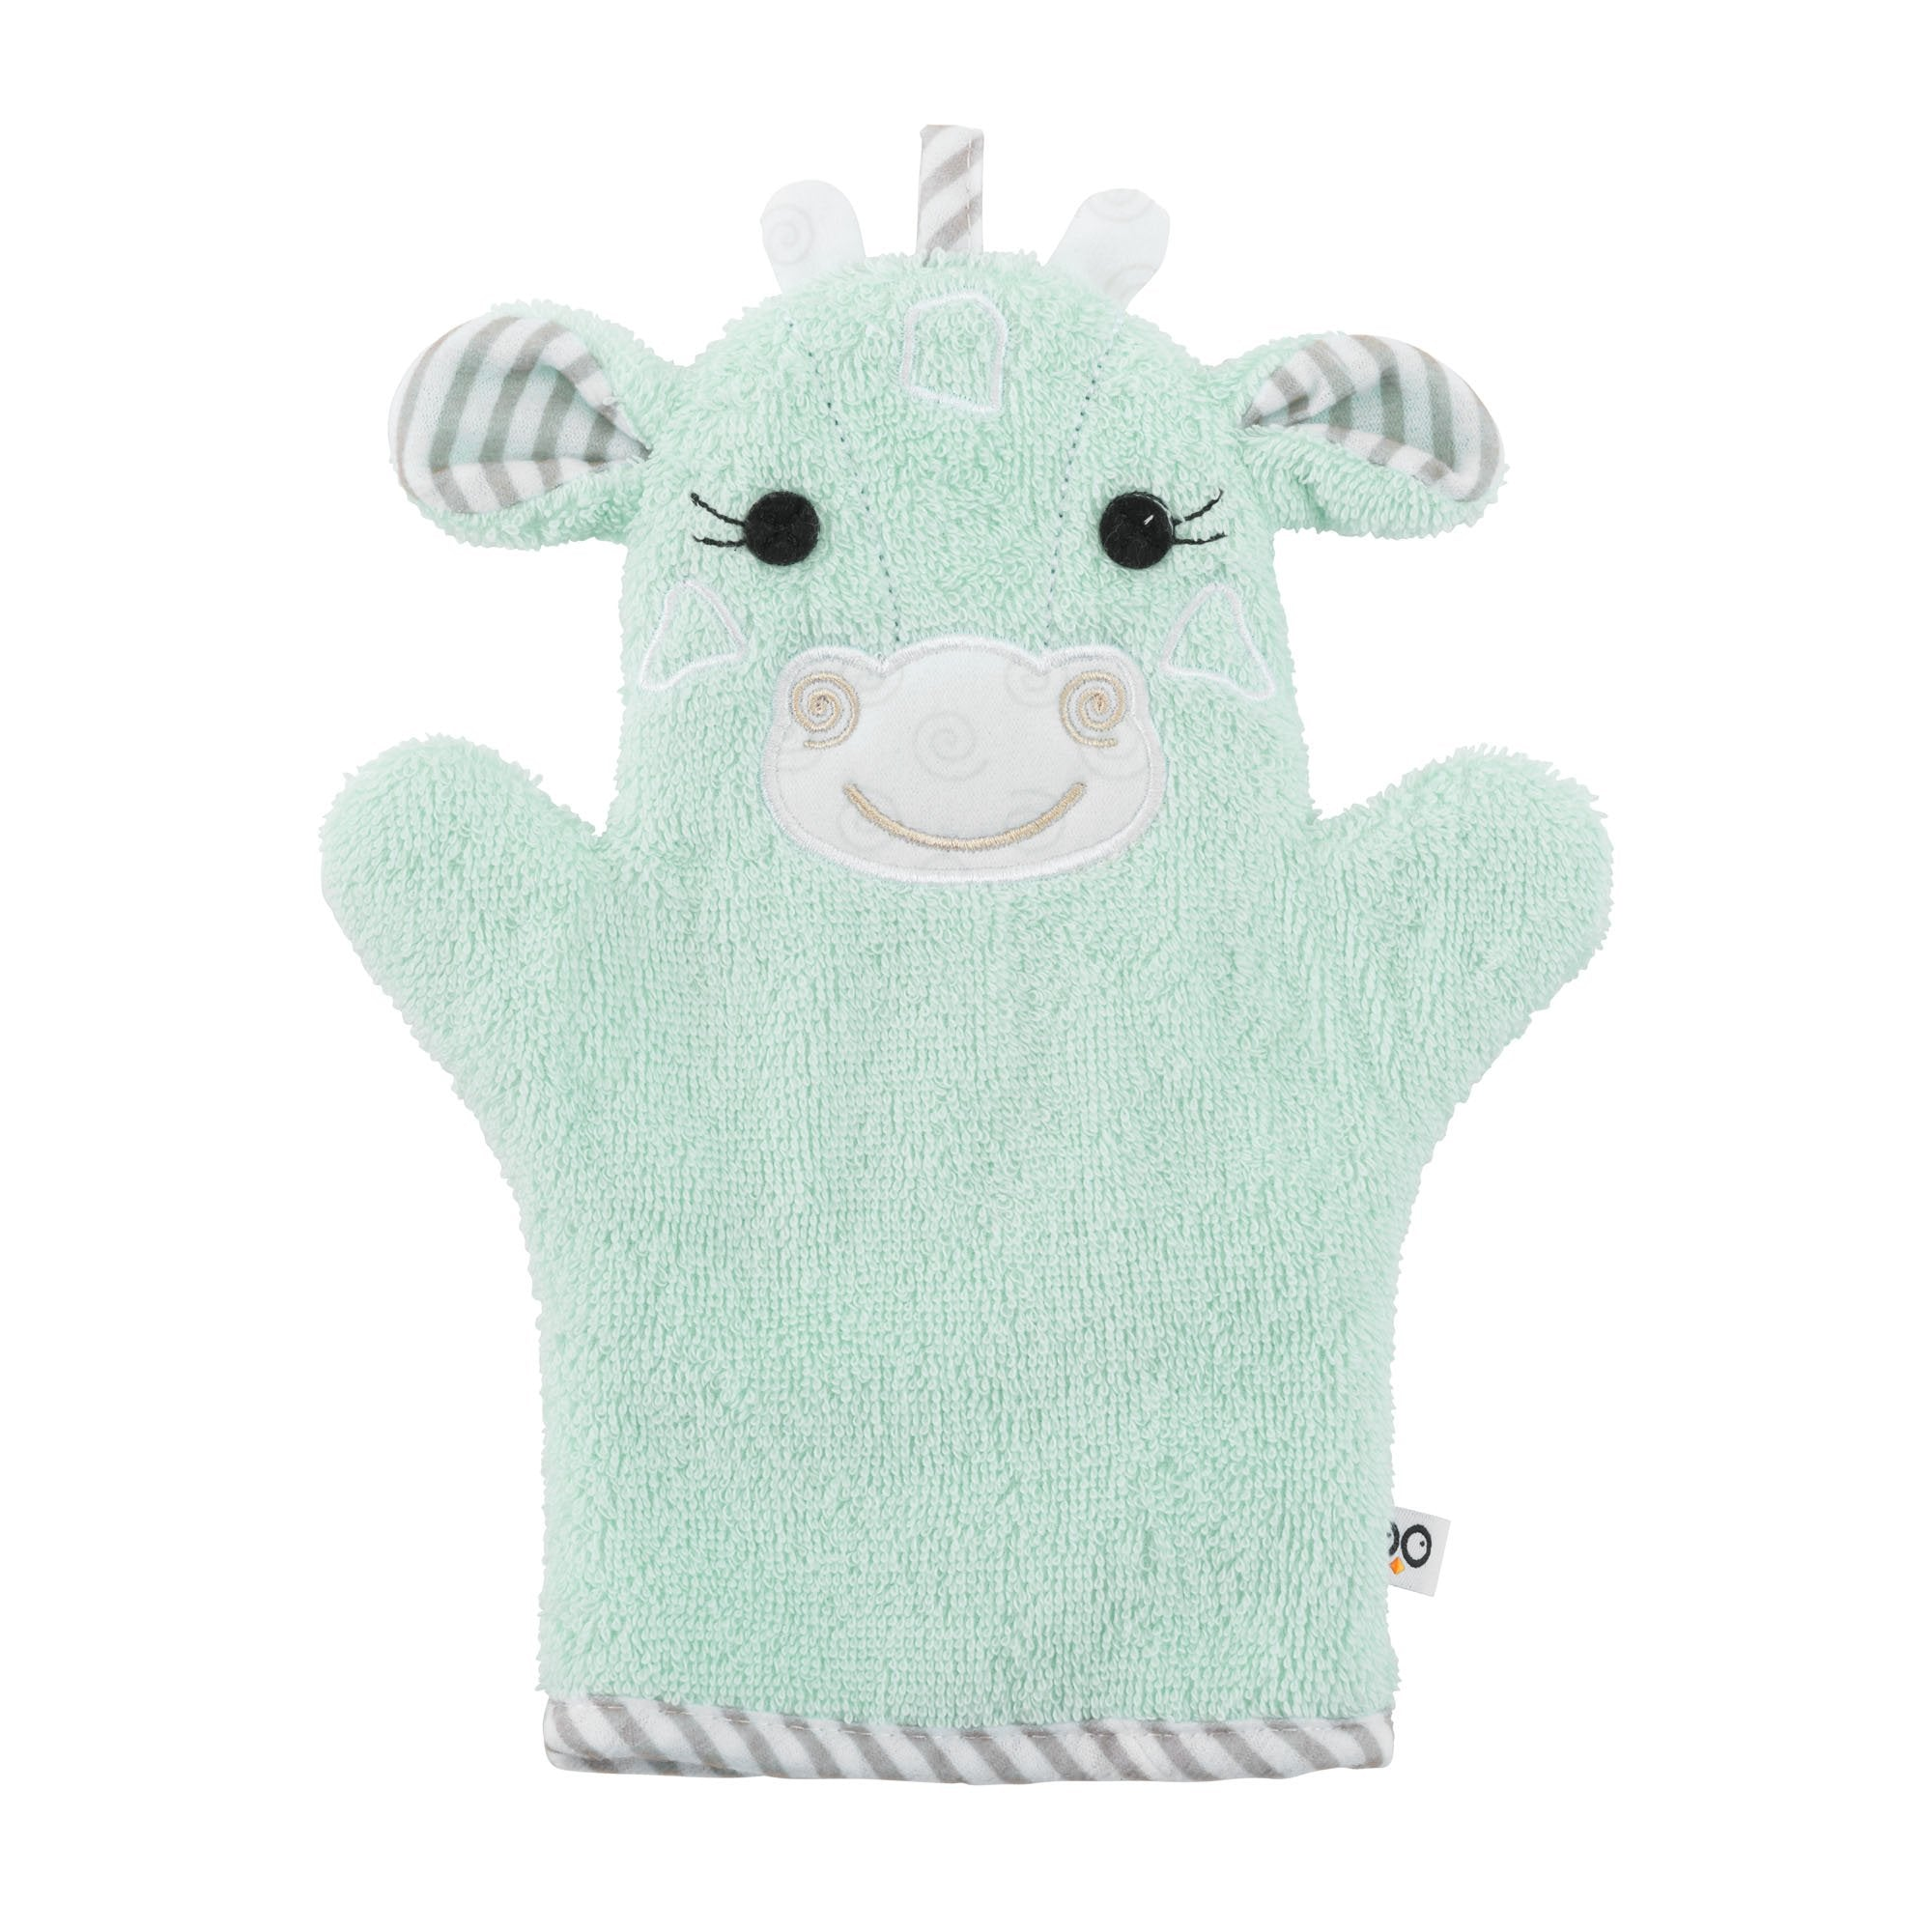 ZOOCCHINI Baby Snow Terry Bath Mitt - Jaime the Giraffe-1